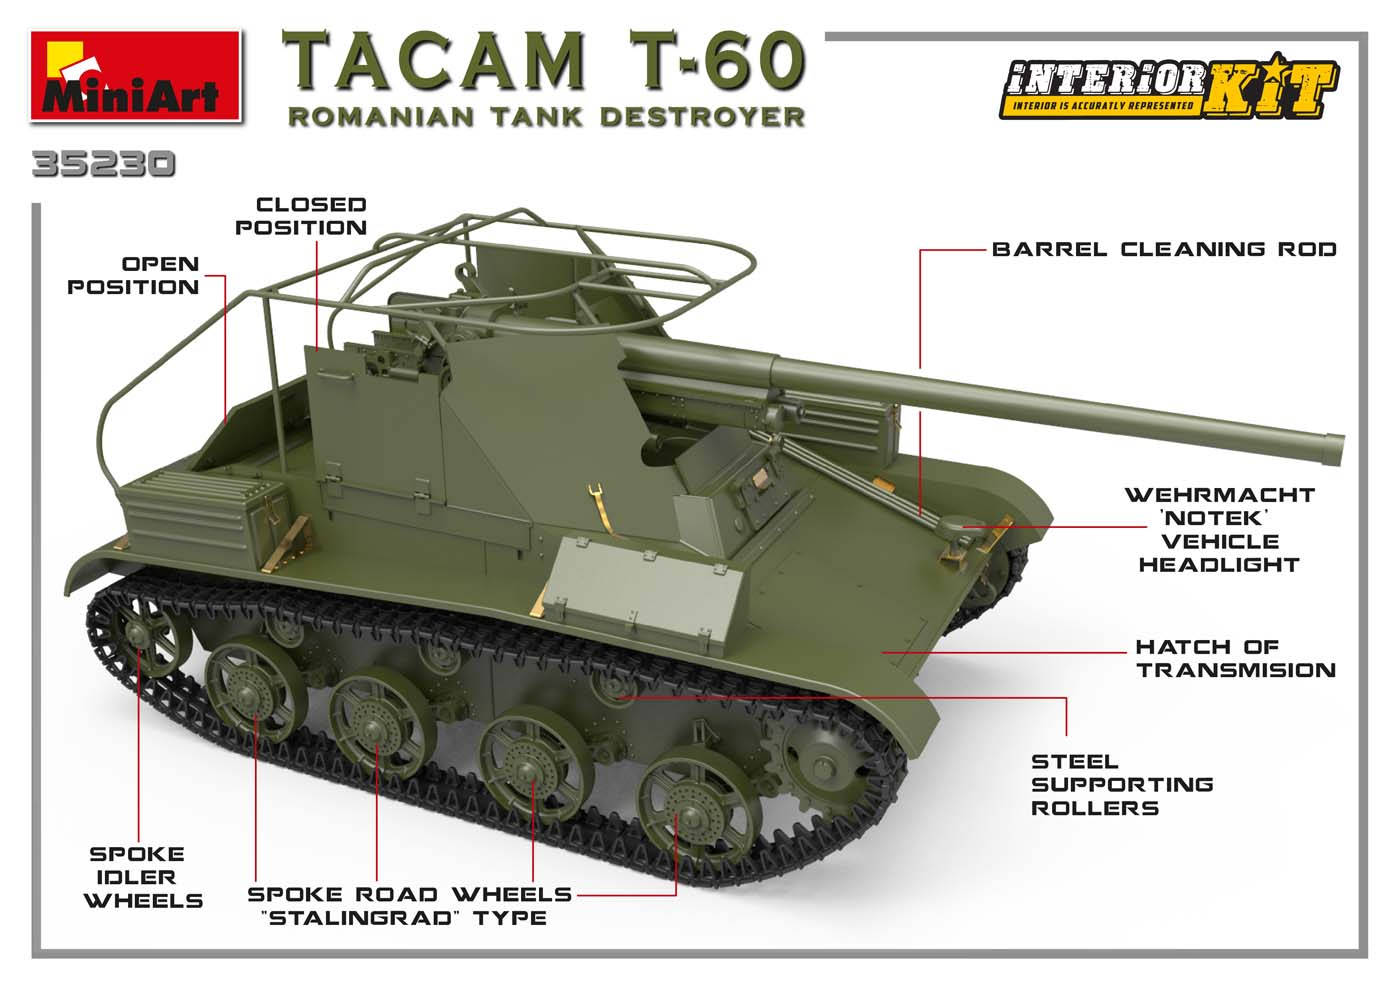 1/35 TACAM T-60 ROMANIAN TANK DESTROYER. INTERIOR KIT 35230